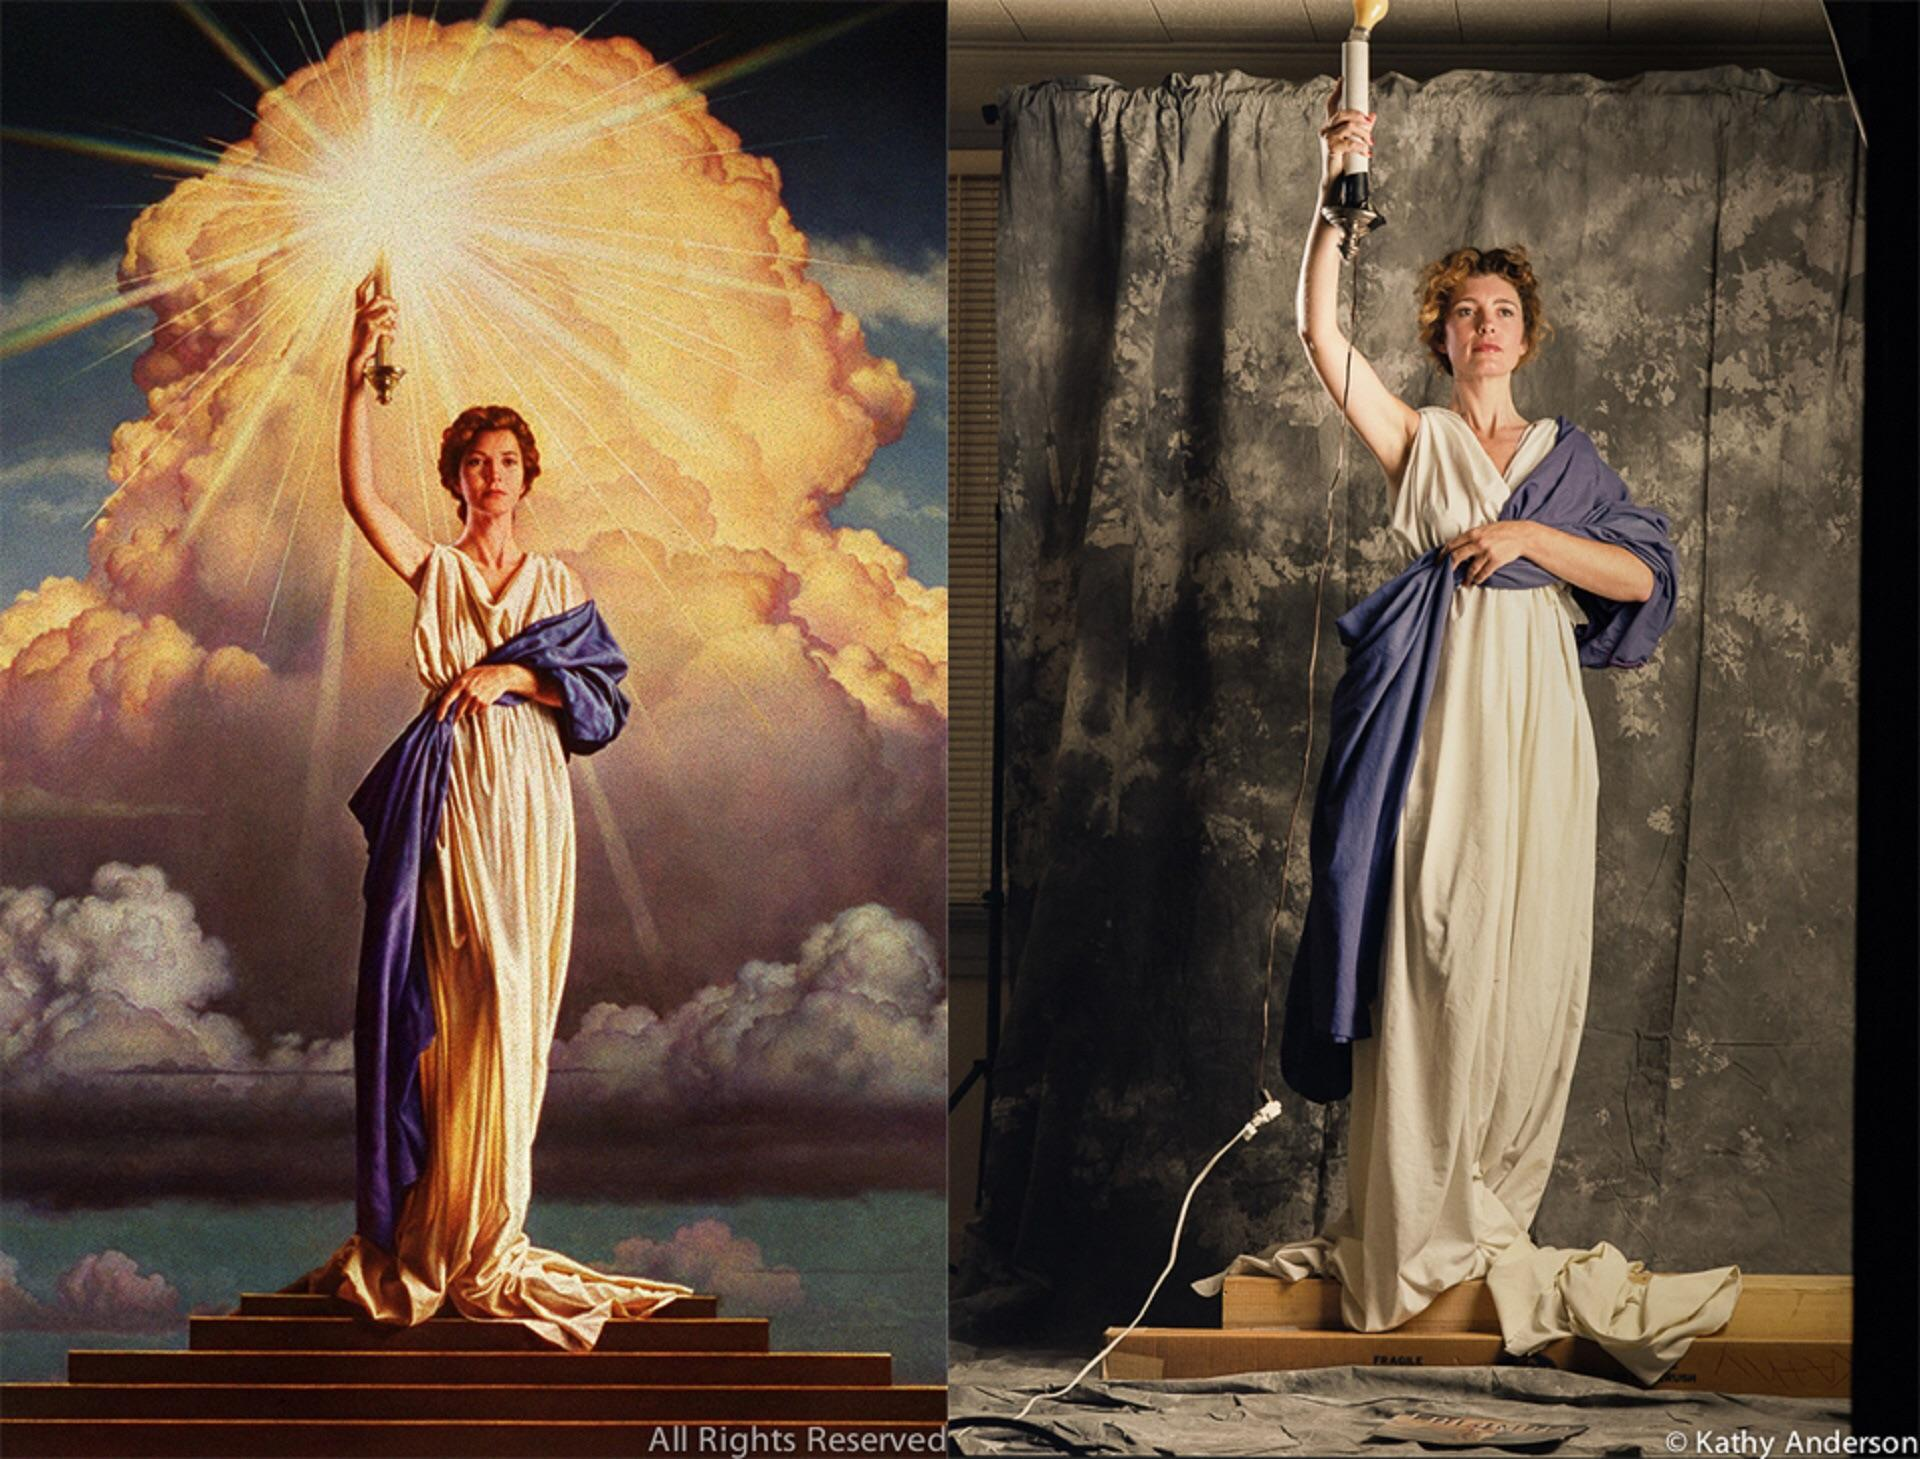 28-year-old Jenny Joseph posing for Columbia Pictures Logo, 1992.jpg